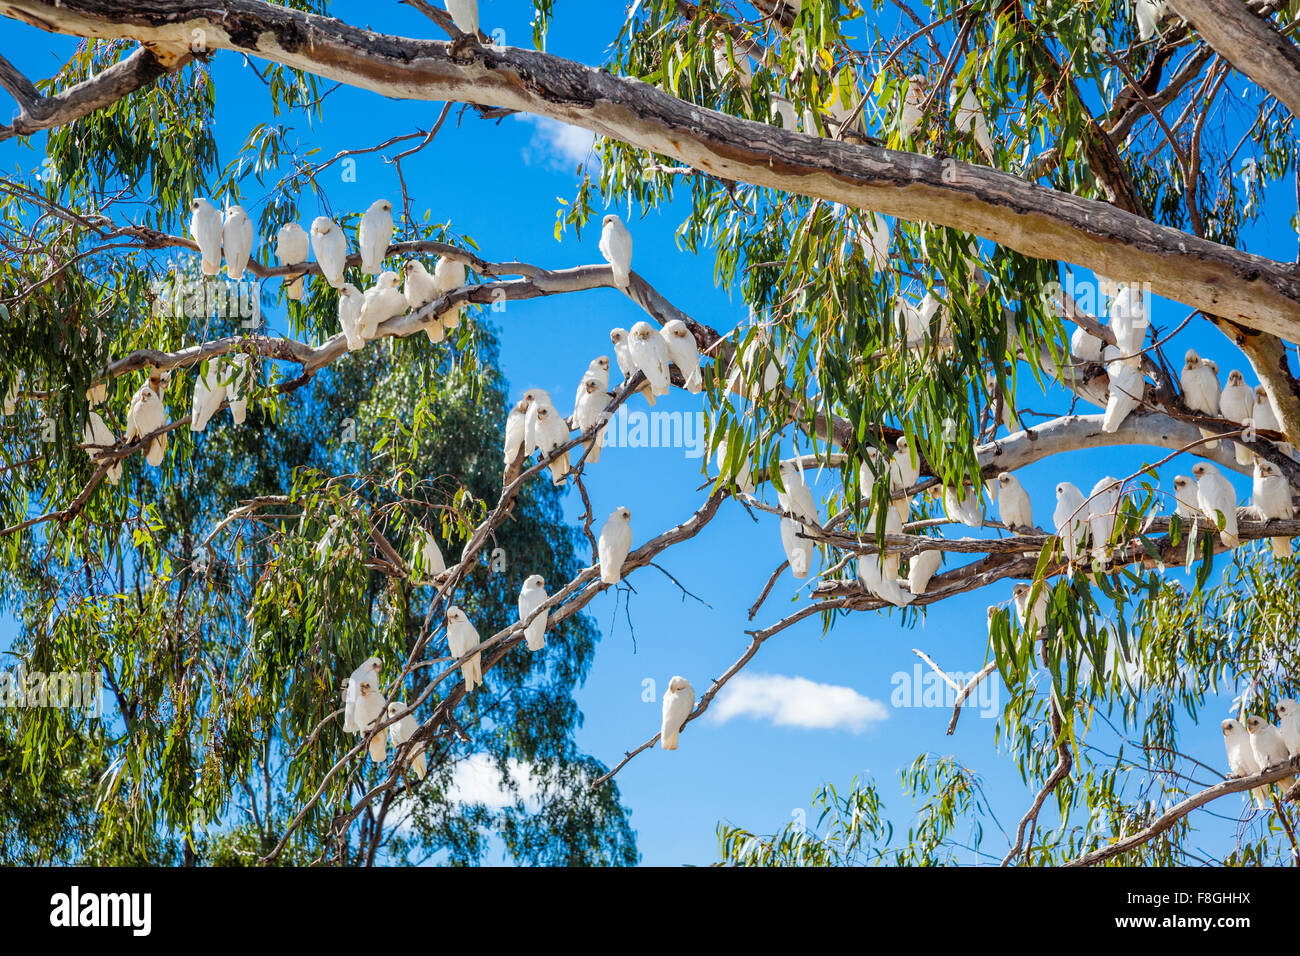 large flock of corellas on a gum tree at the Darling River, Bourke, North West New South Wales, Australia - Stock Image